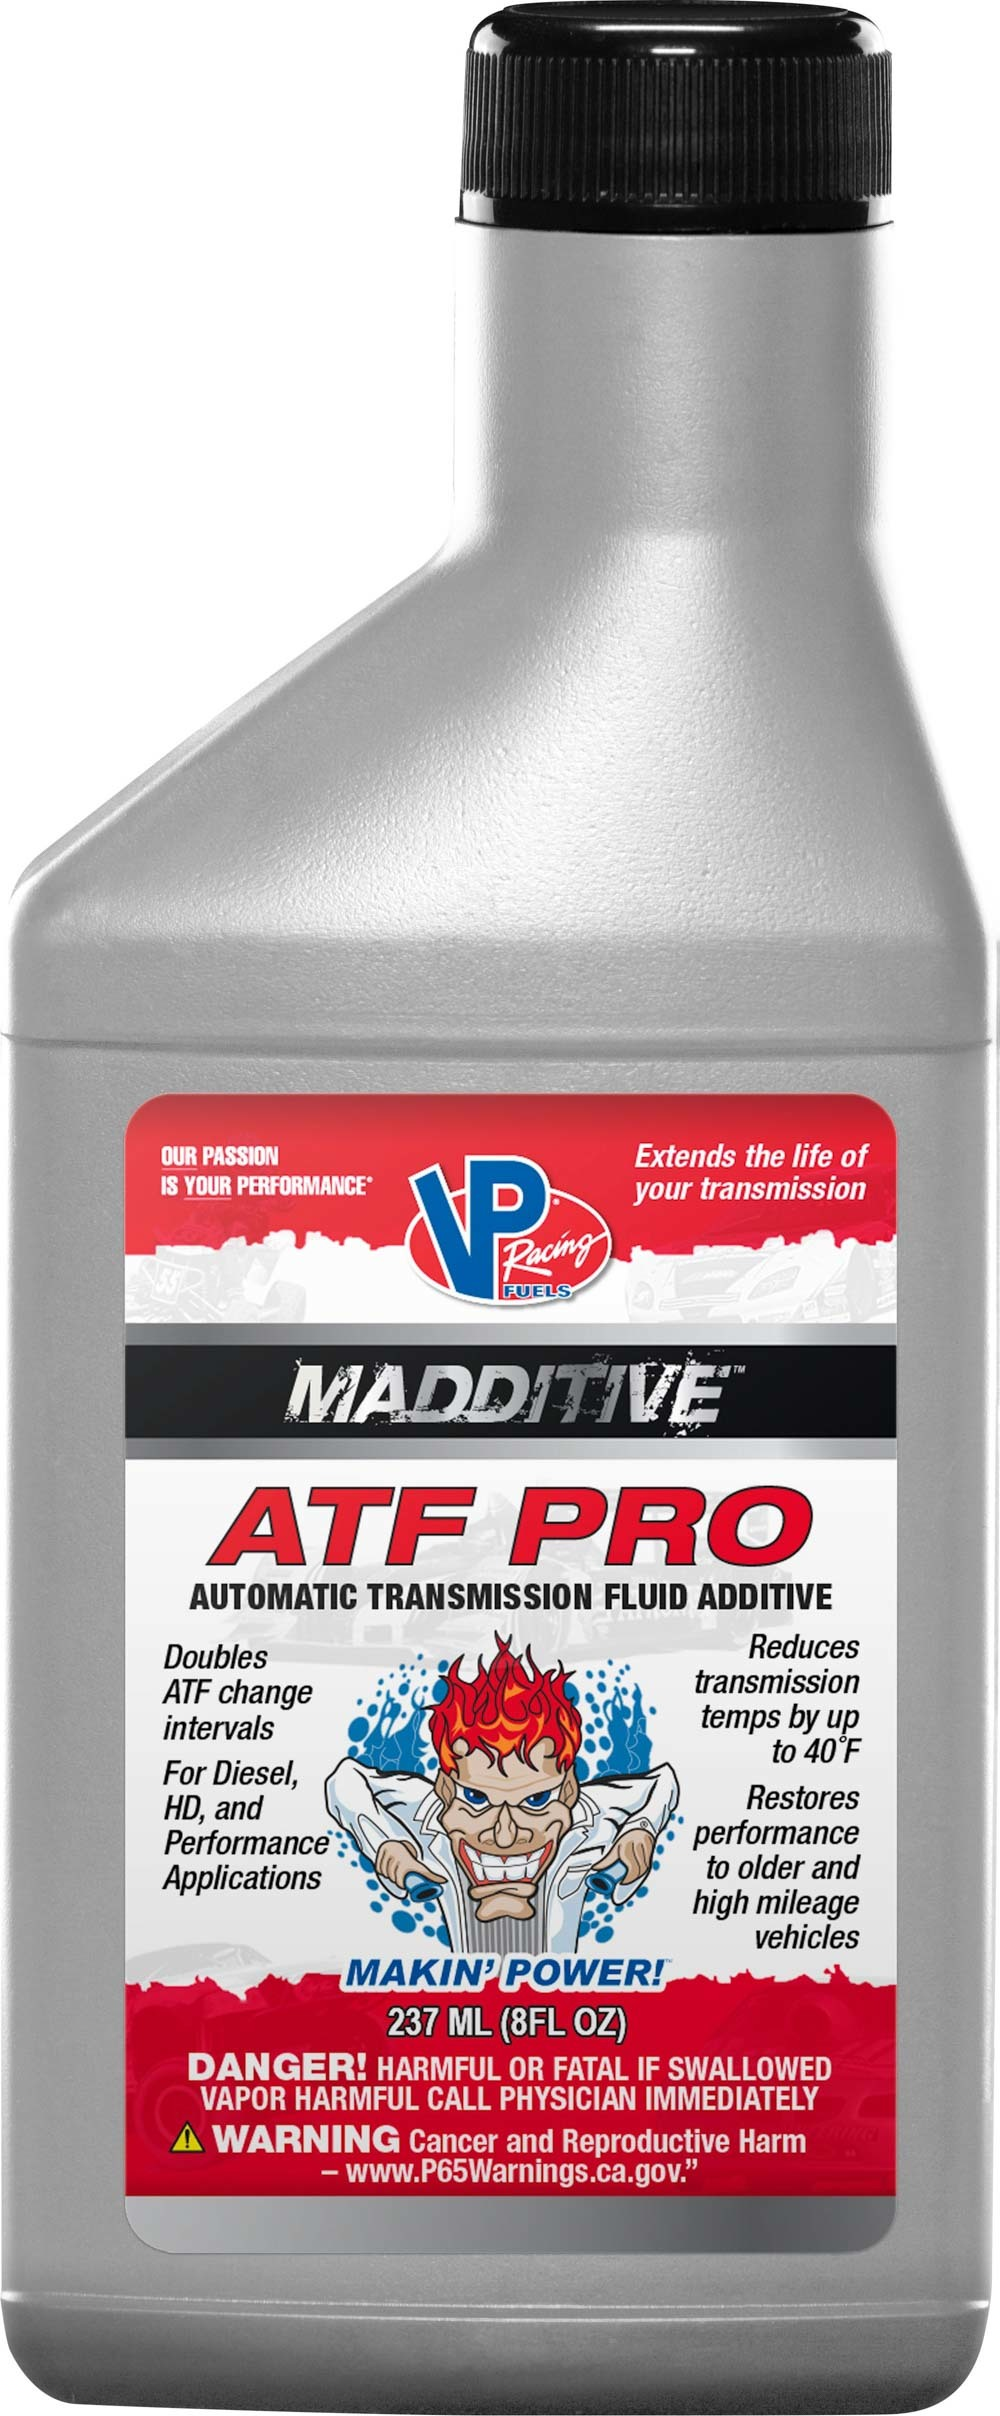 Vp Fuel Containers Transmission Additive Pro 8oz